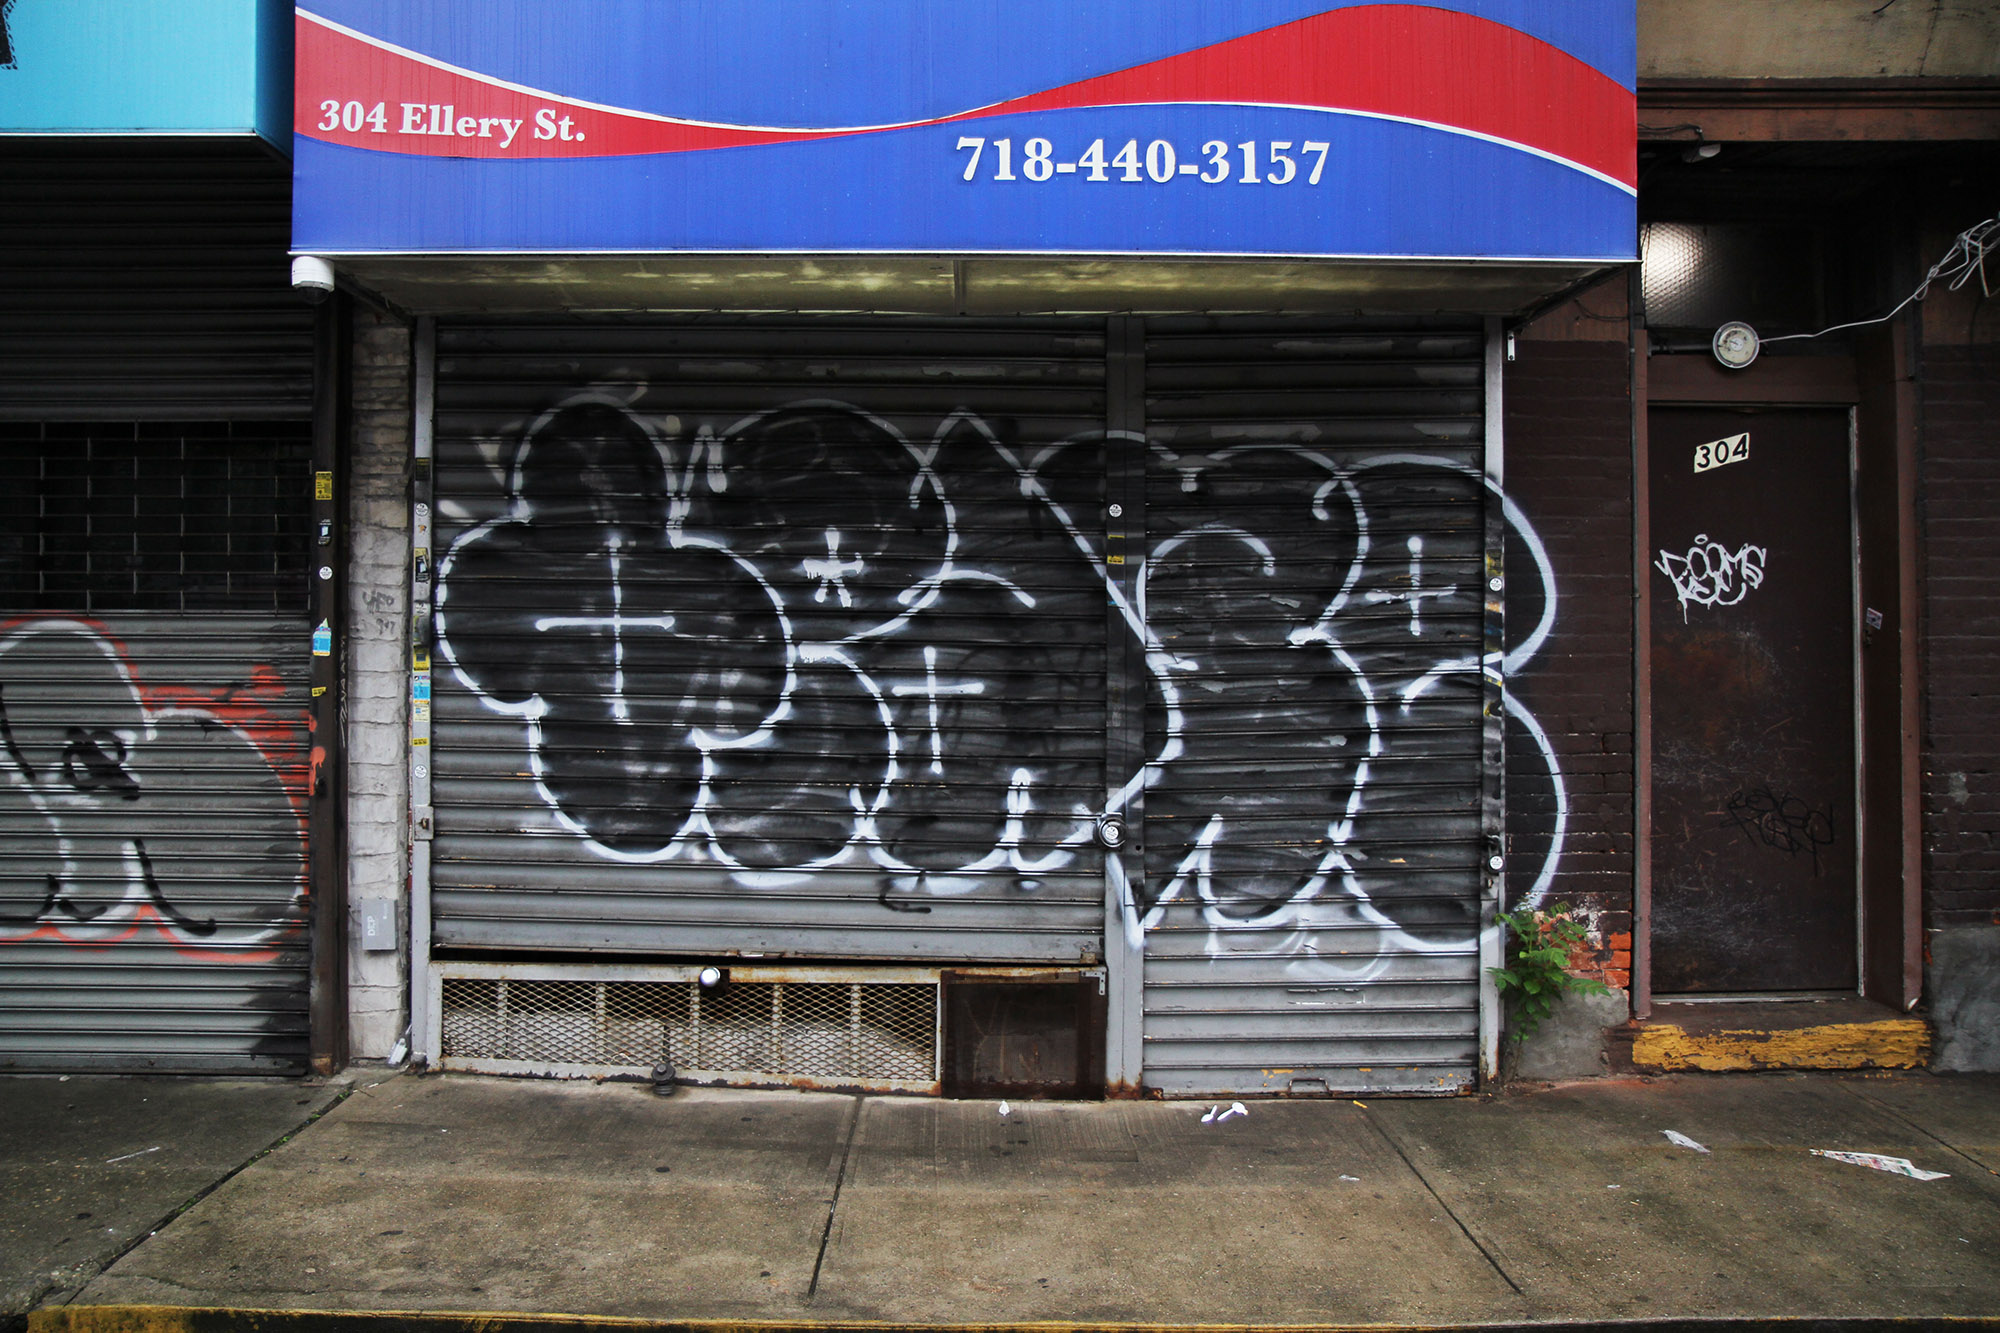 Opaqe, May 2019, New York City